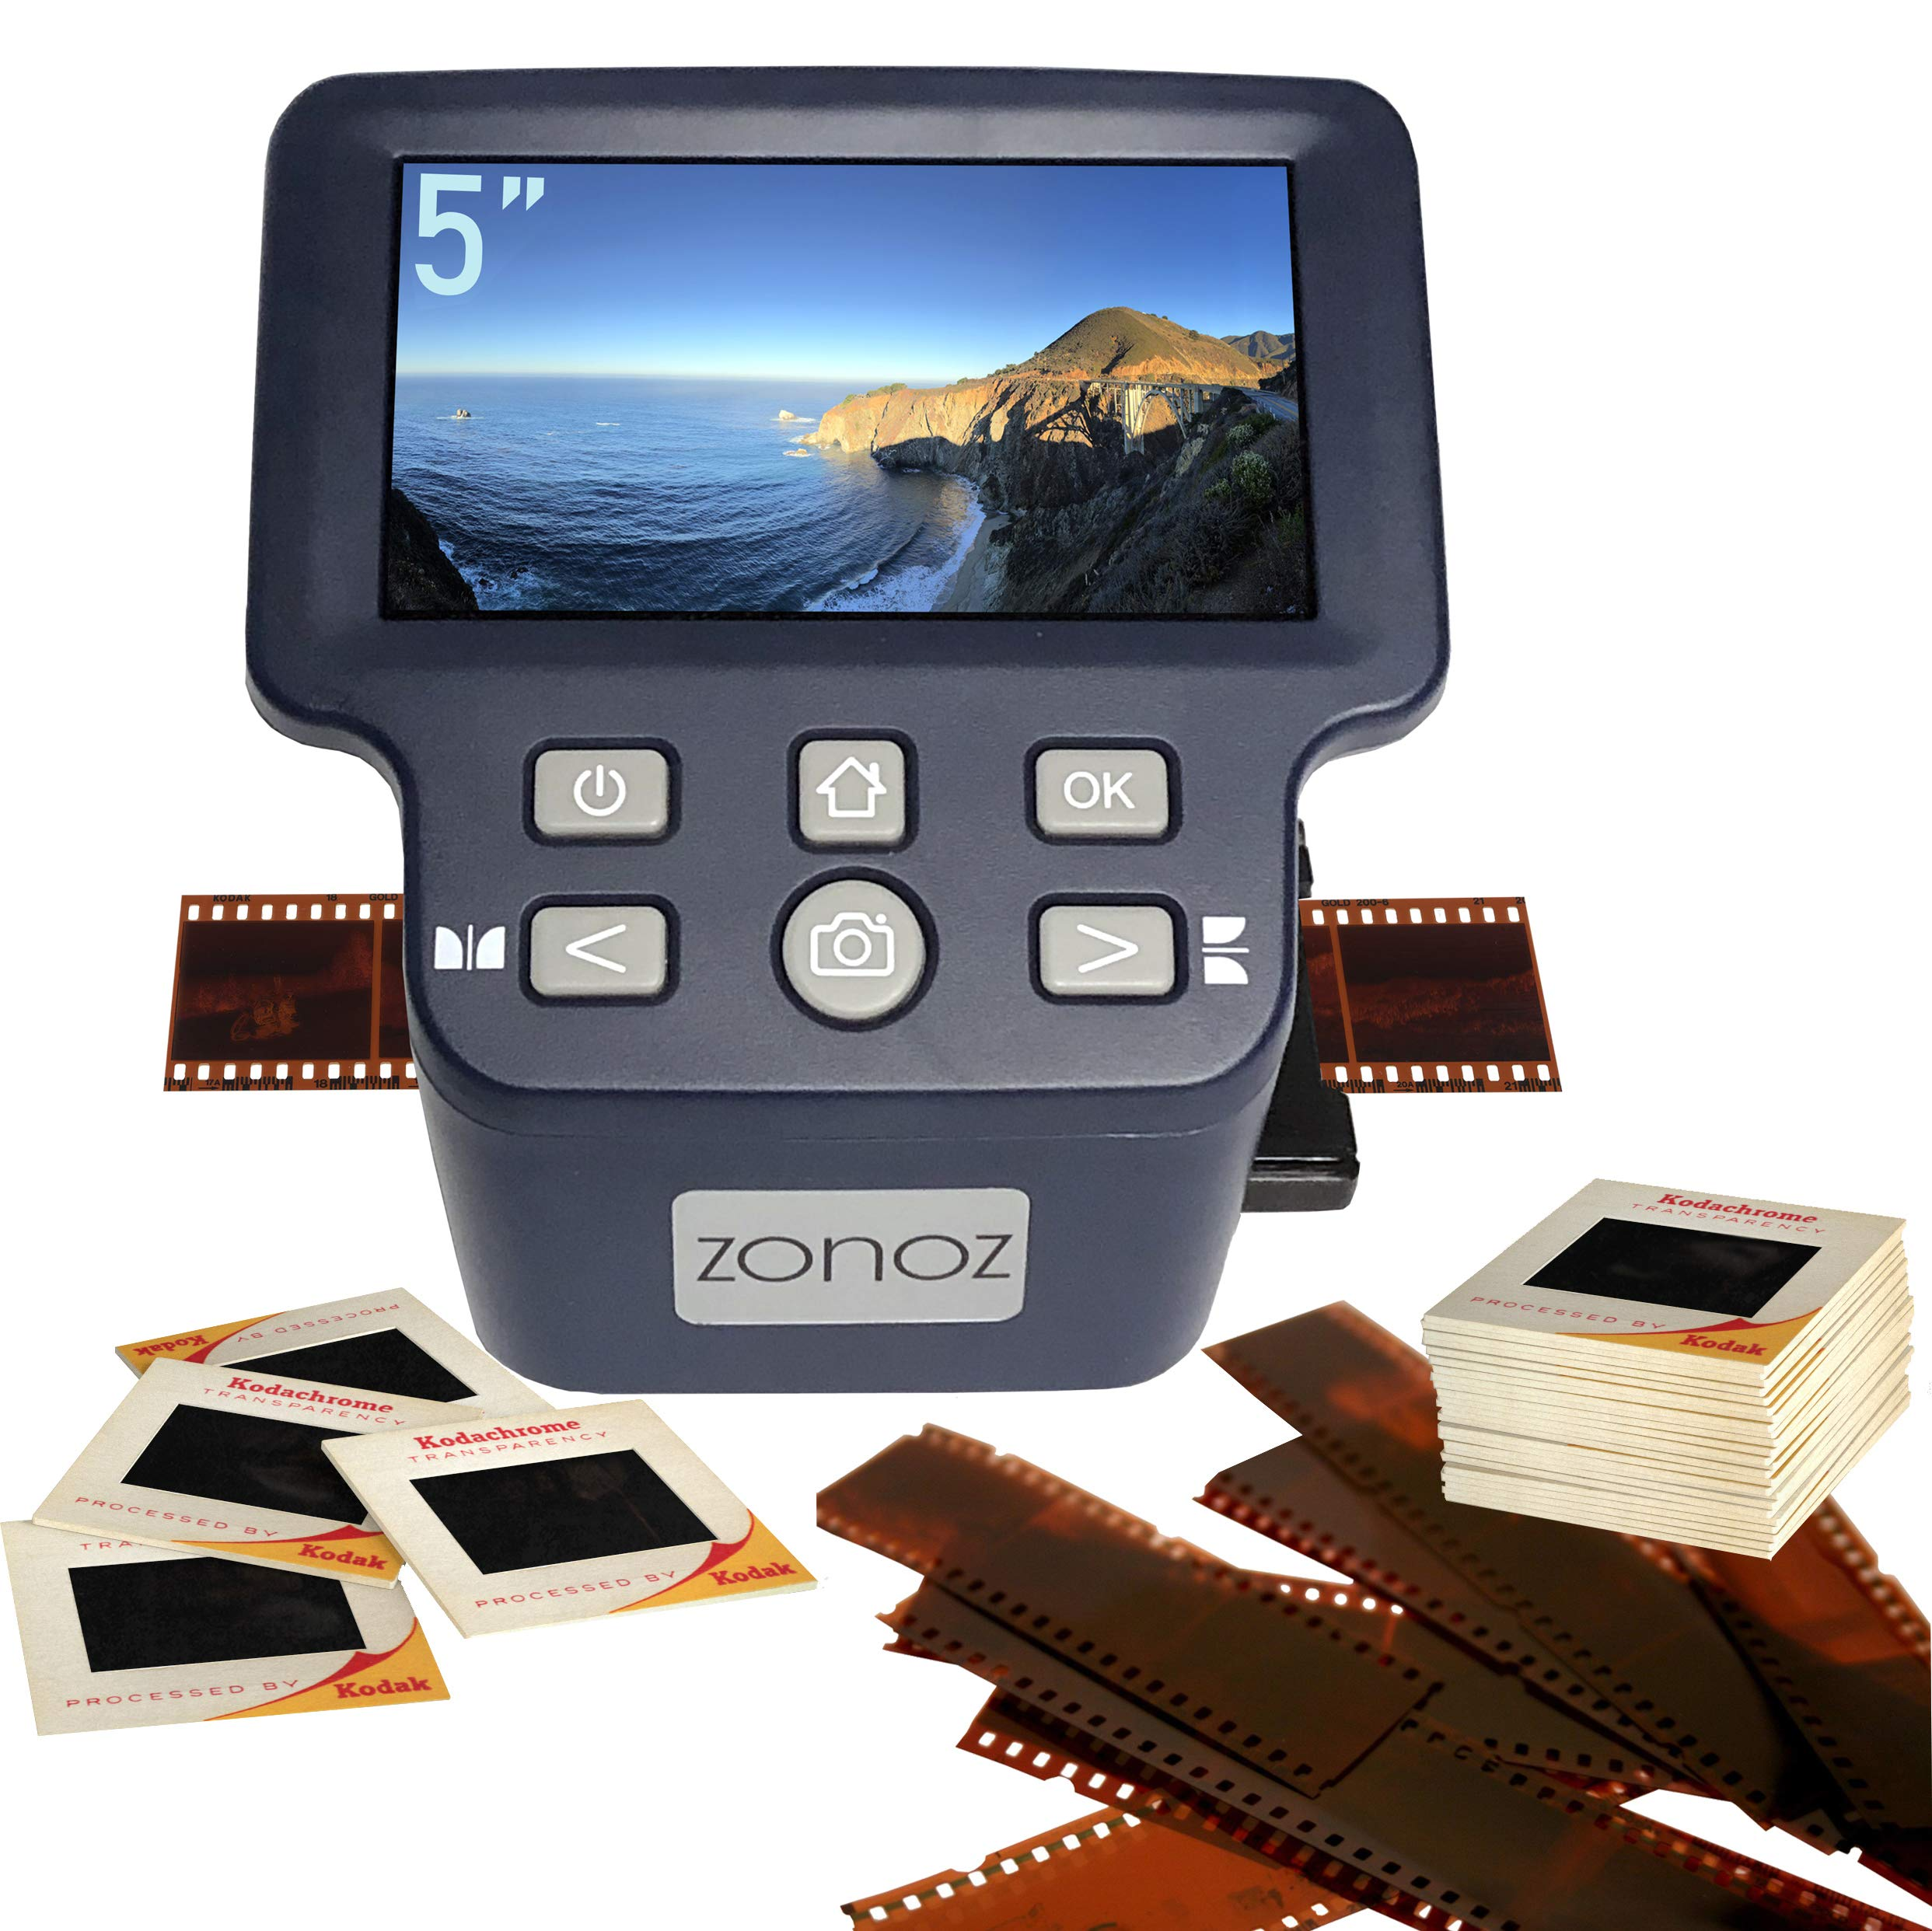 zonoz FS-Four Digital Film & Slide Scanner Converter w/HDMI Output - Converts 35mm, 126, 110, Super 8 & 8mm Film Negatives & Slides to JPEG - Large 5'' LCD, Easy-Load Adapters (Worldwide 110V-220V) by zonoz (Image #1)